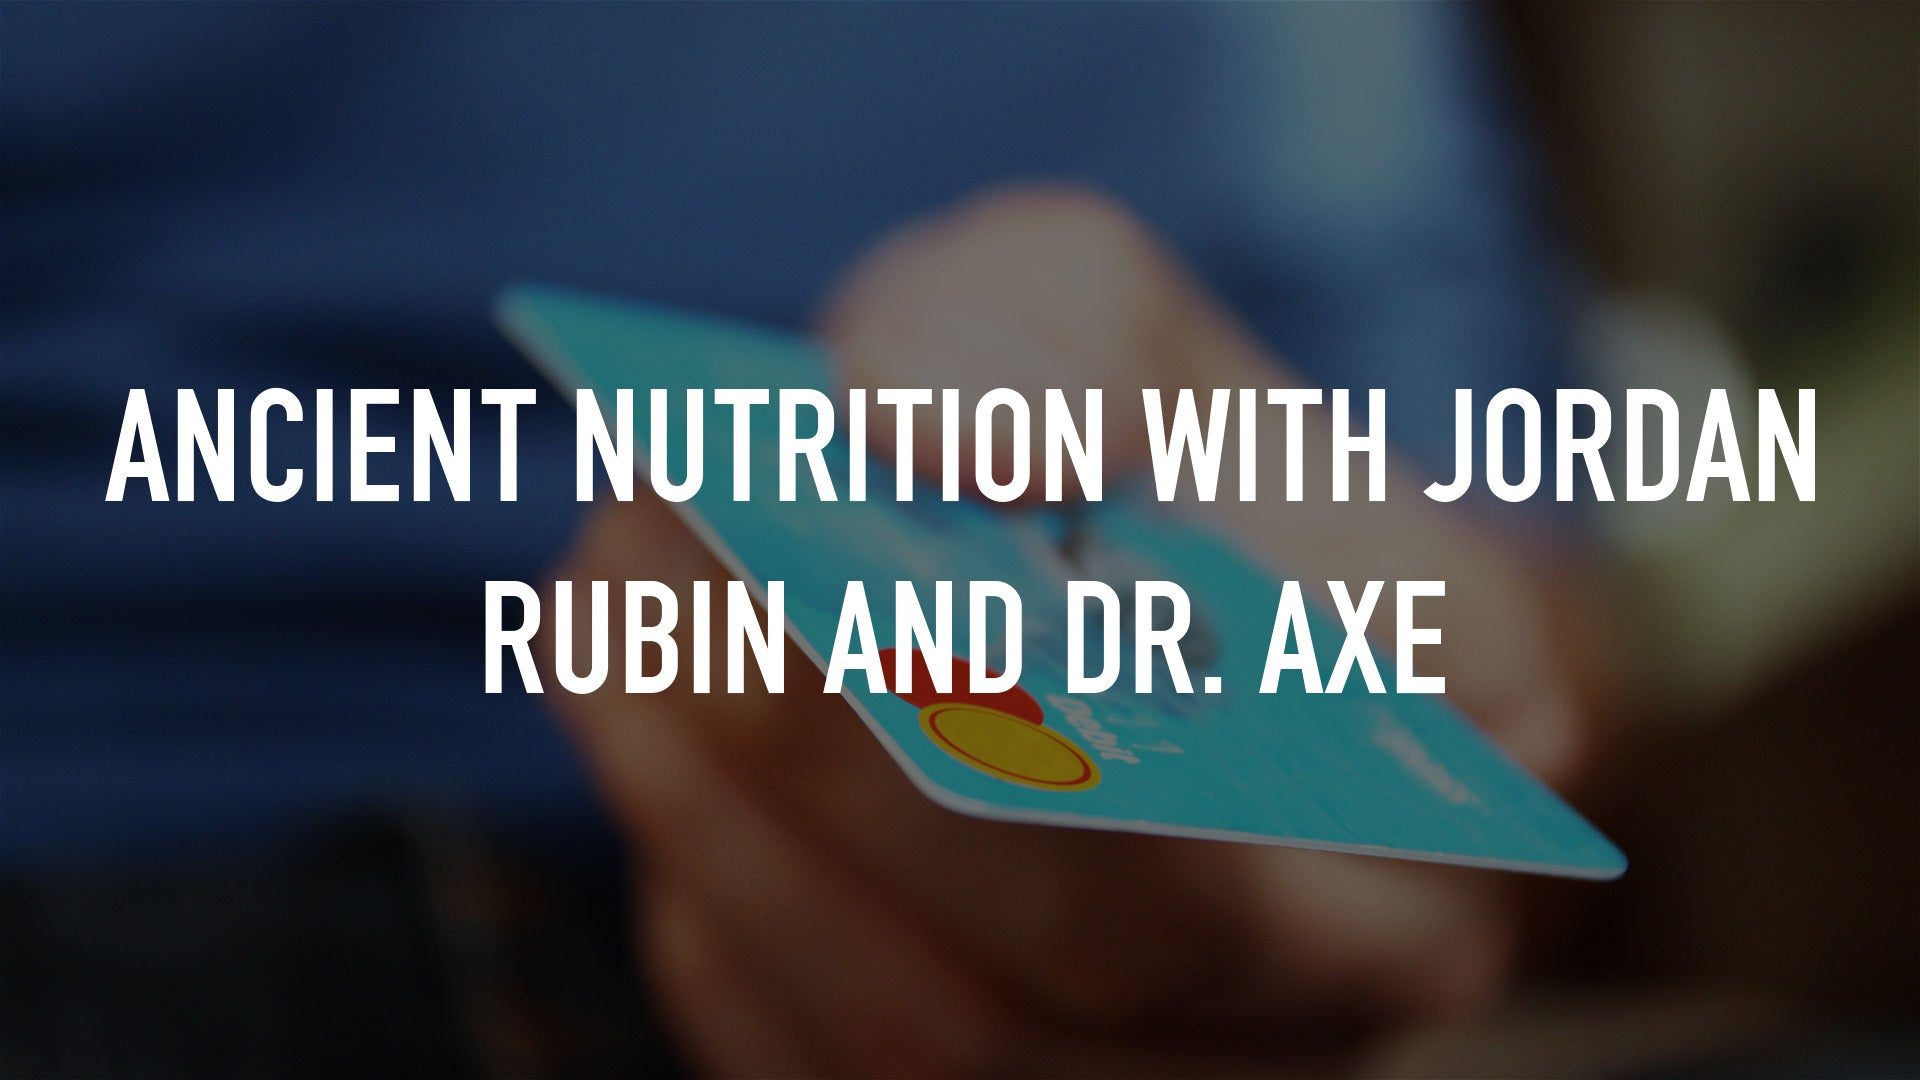 Ancient Nutrition with Jordan Rubin and Dr. Axe